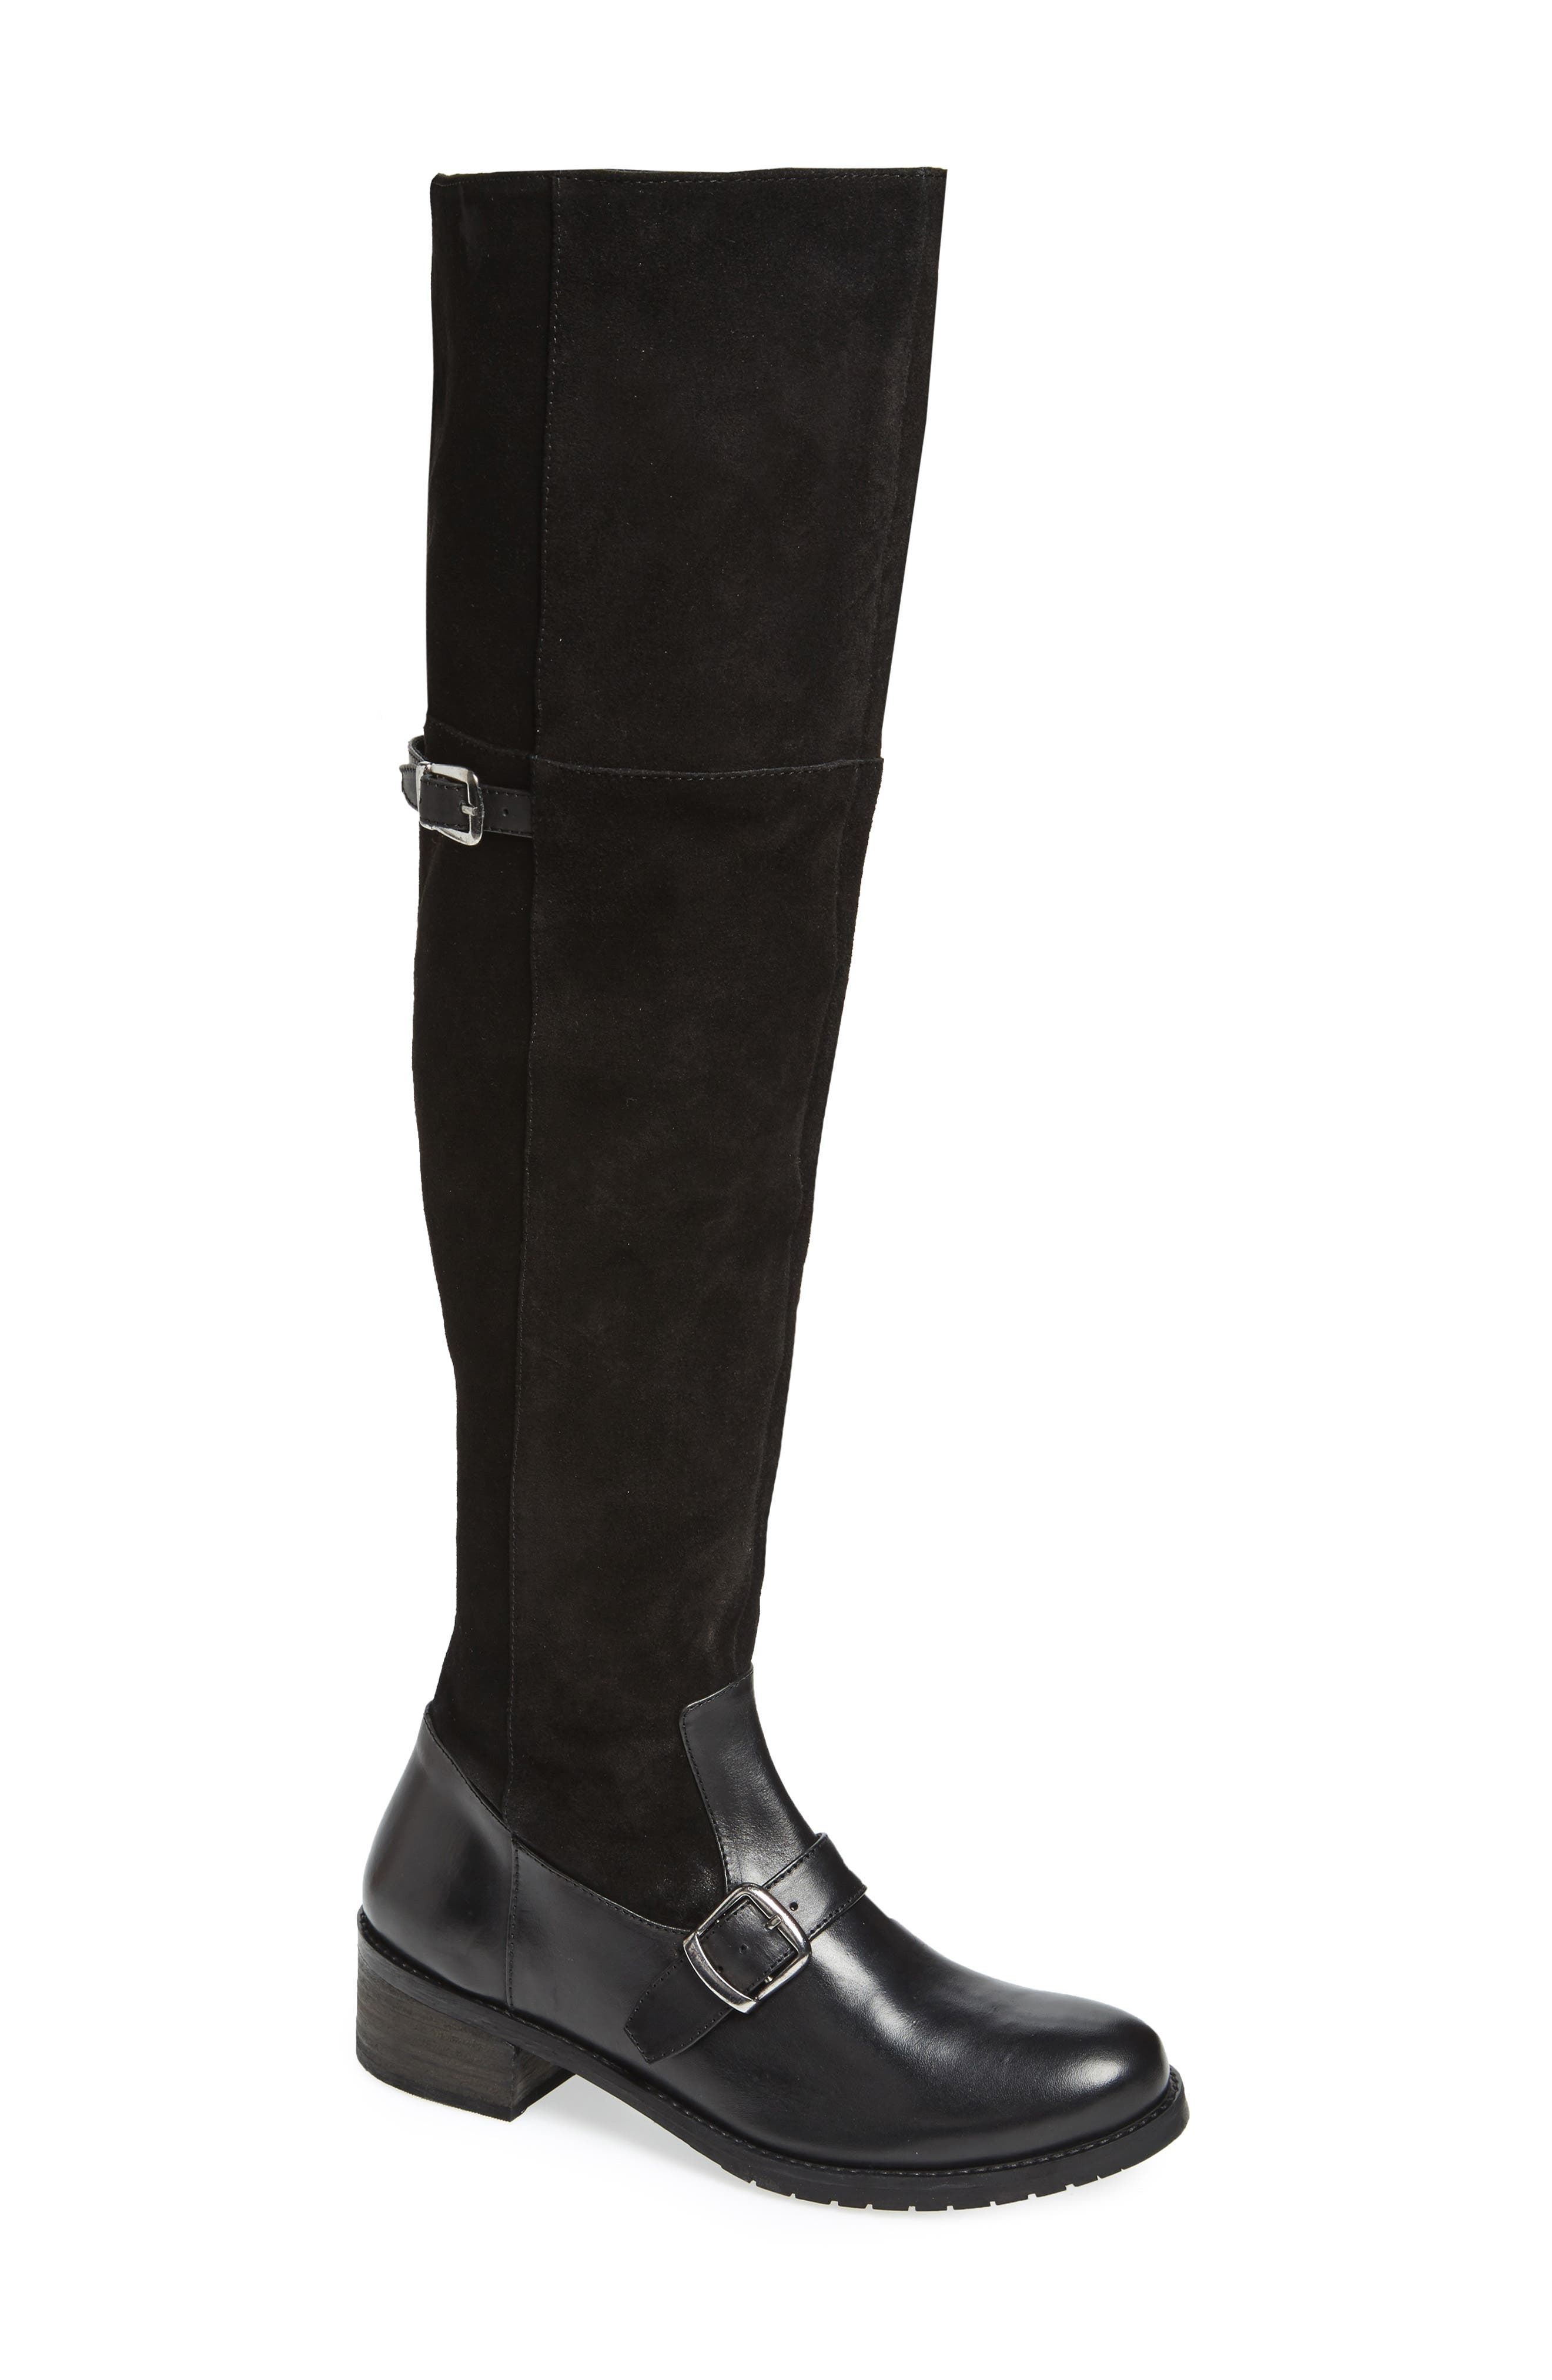 Lola Over the Knee Boot,                             Main thumbnail 1, color,                             017